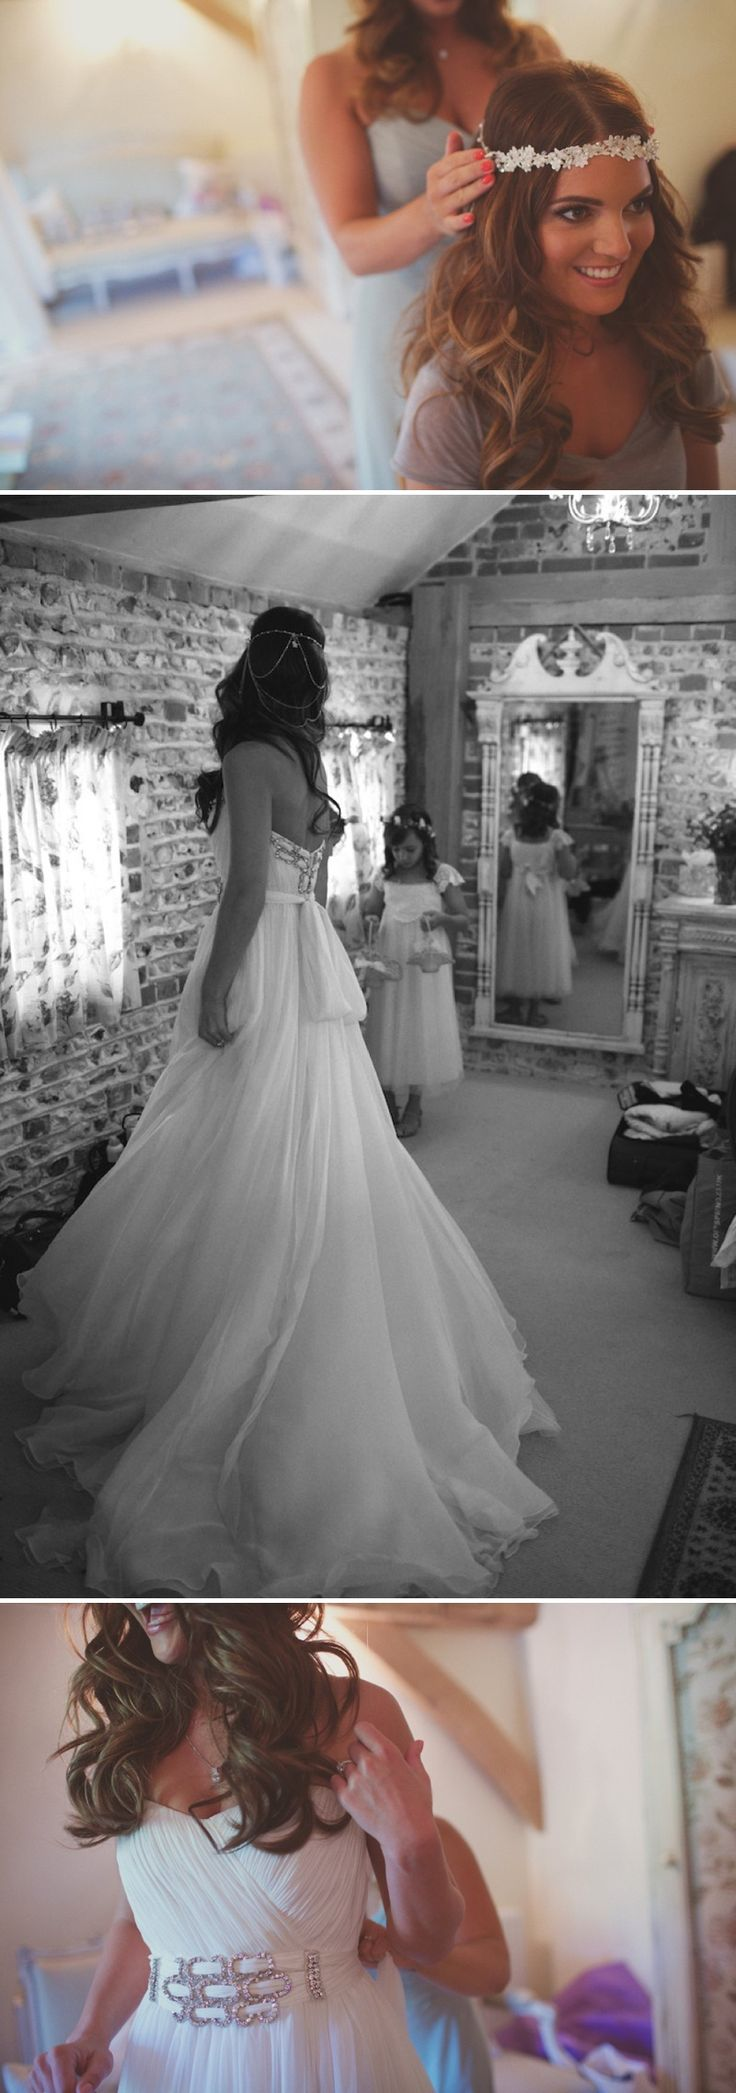 A bohemian wedding at Upwaltham Barns Chichester with a Manuel Mota bridal gown by LIsa Devlin 0230 Bohemian But With A Modern Twist.